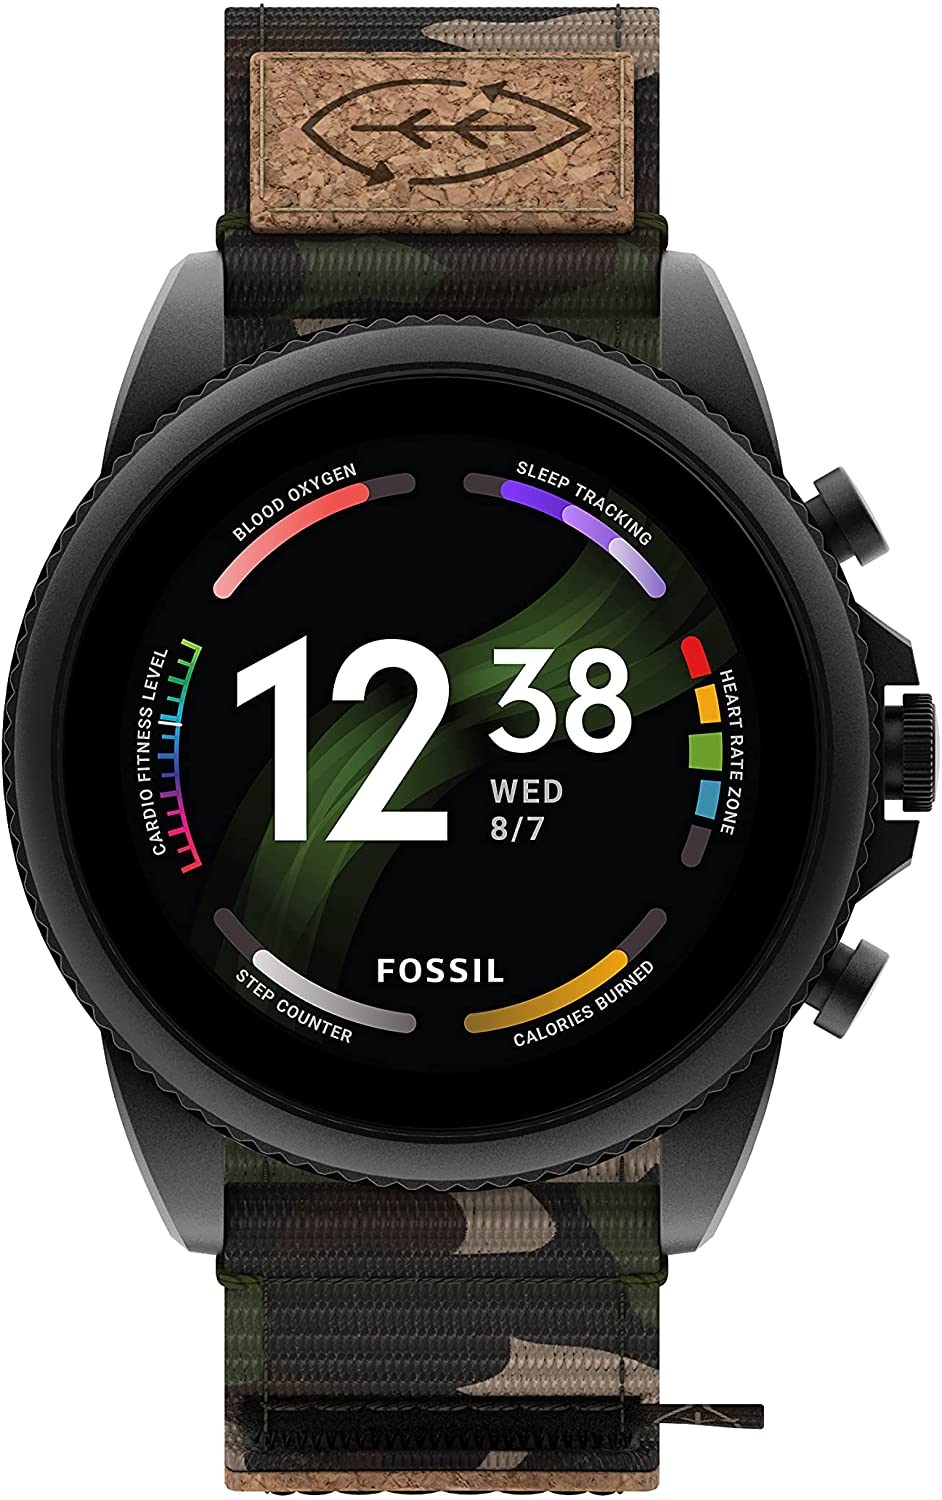 Fossil Men's Gen 6 Touchscreen Smartwatch with Speaker, Heart Rate, Blood Oxygen, GPS, Contactless Payments and Smartphone Notifications